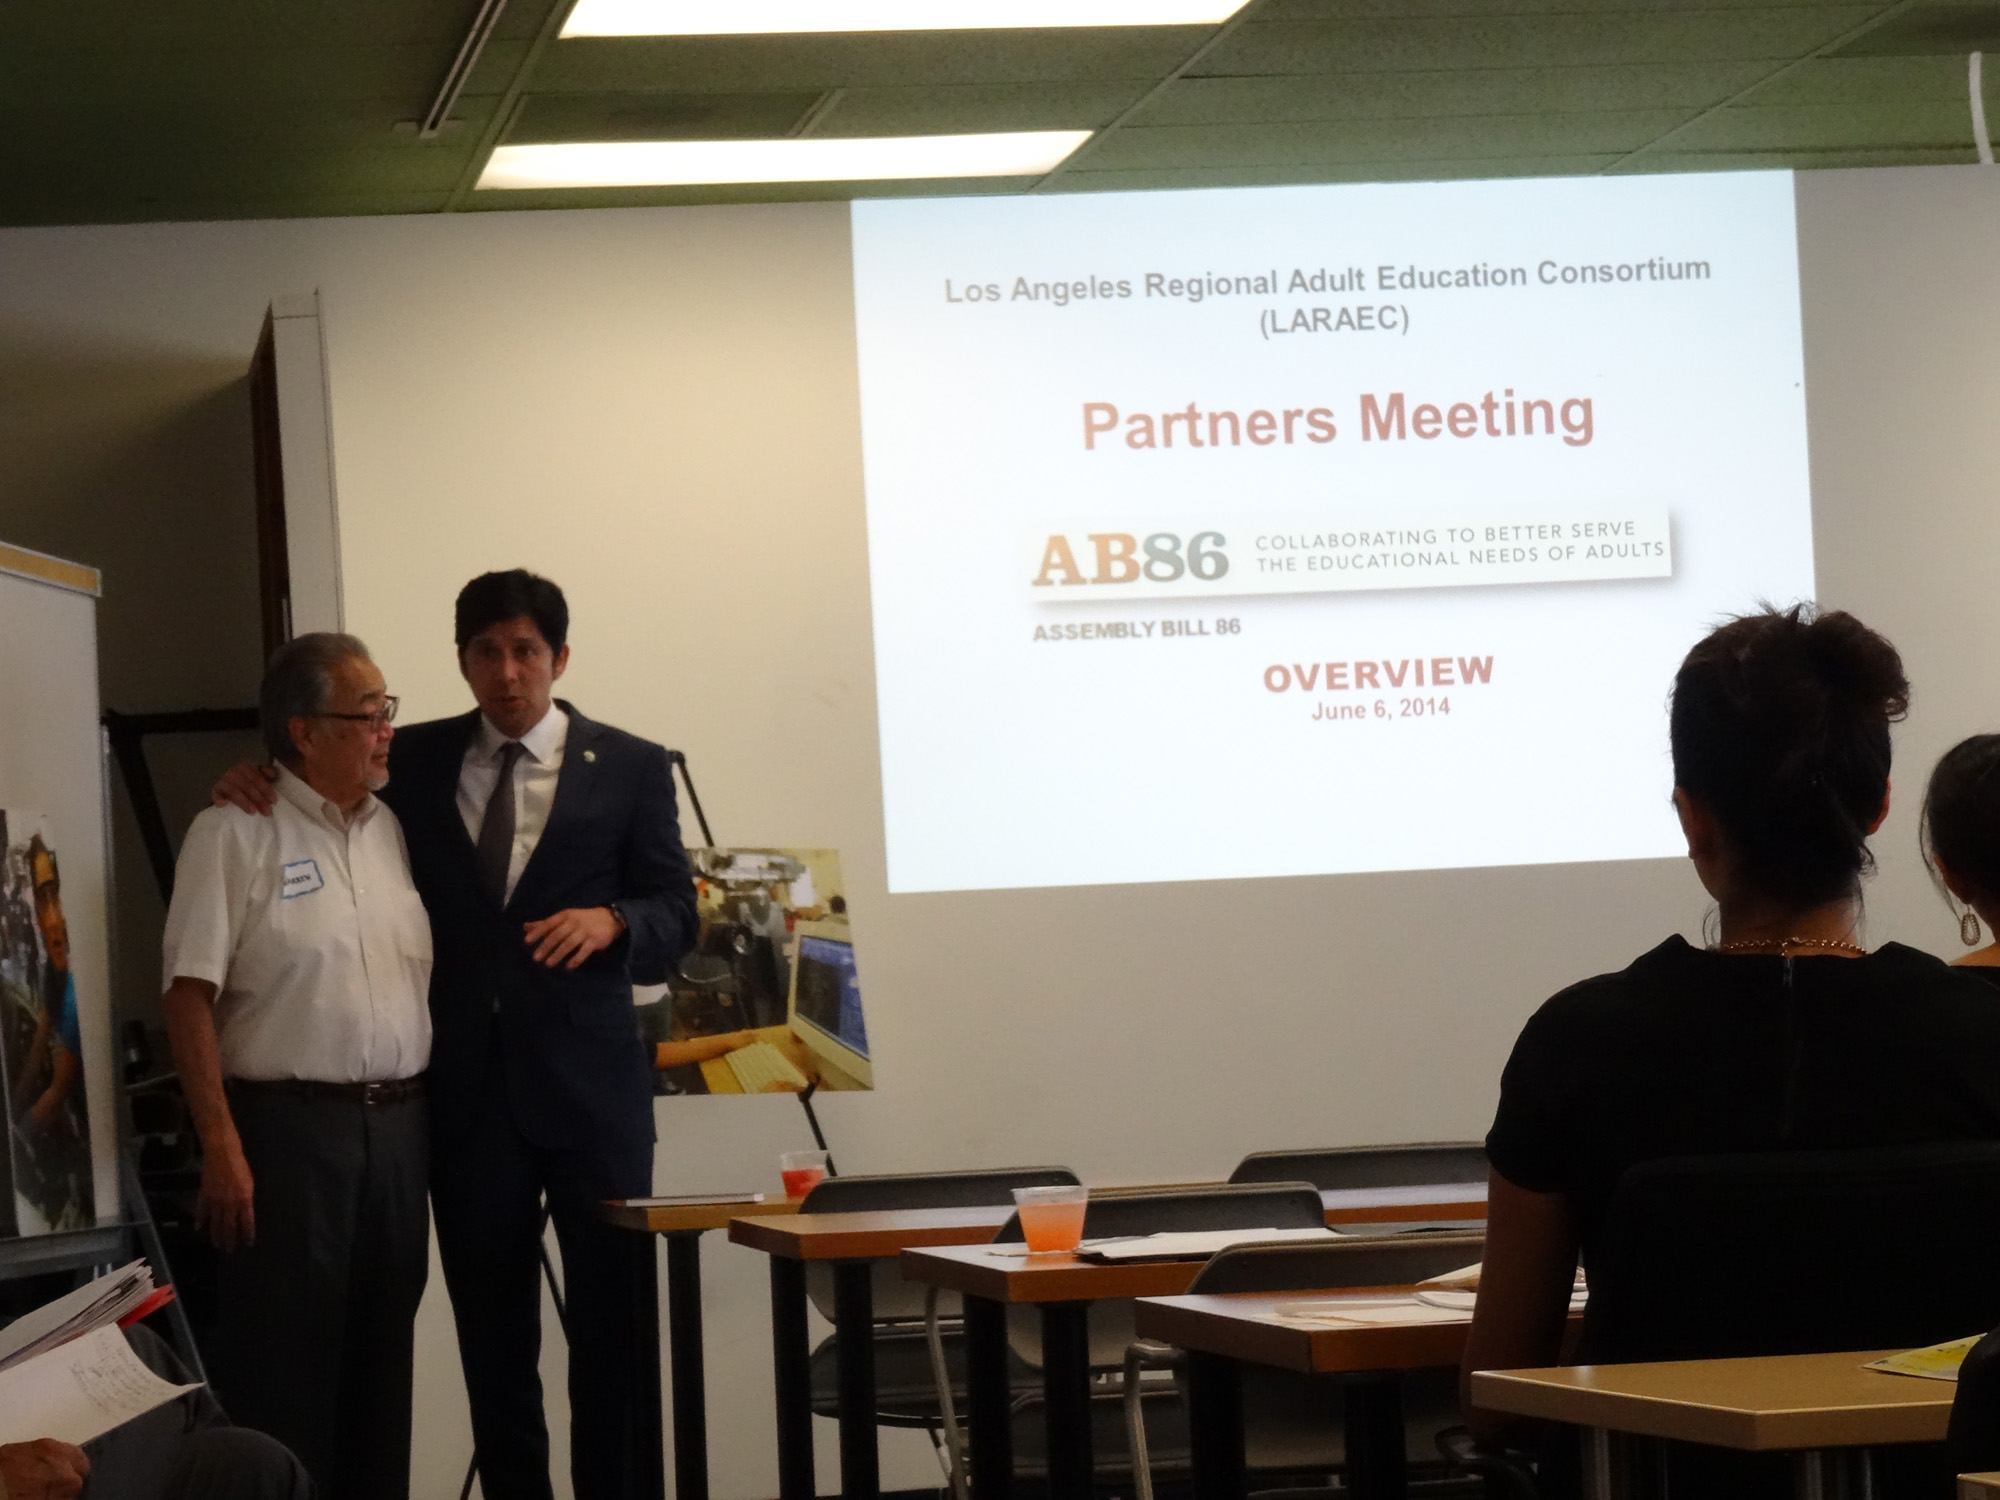 LARAEC-Partners-Meeting-06-06-14-16